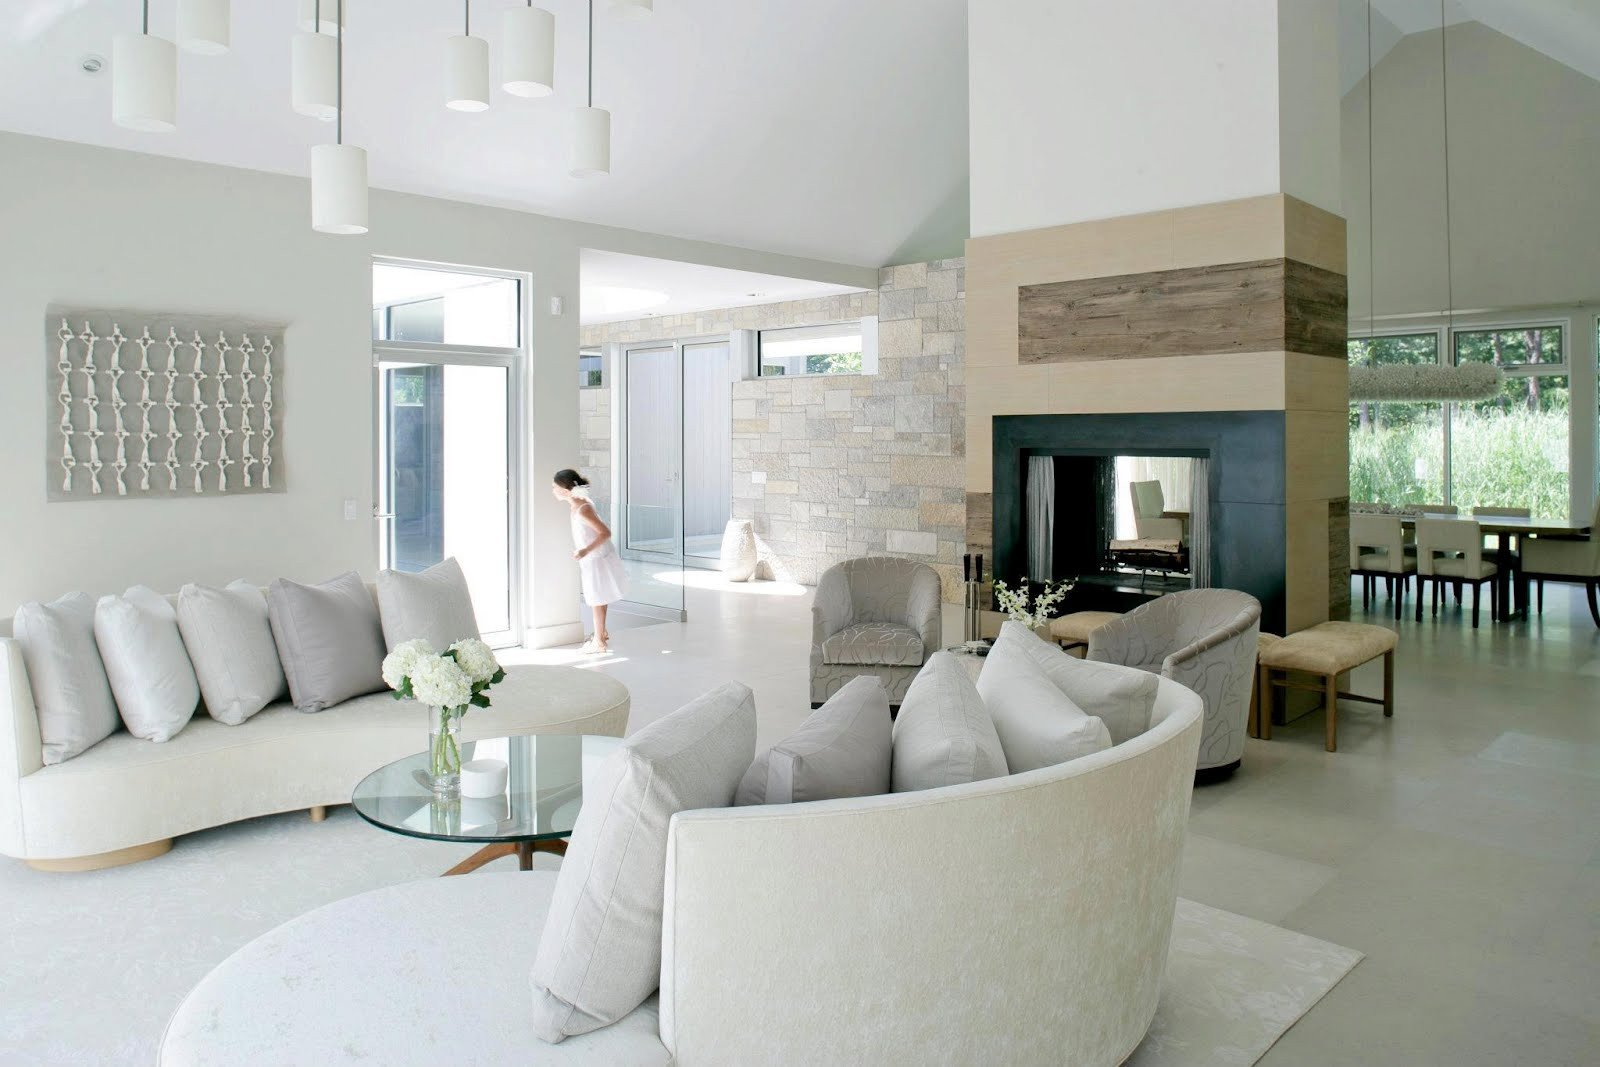 Farmhouse Contemporary Living Room See This House White On White In A Modern Hamptons